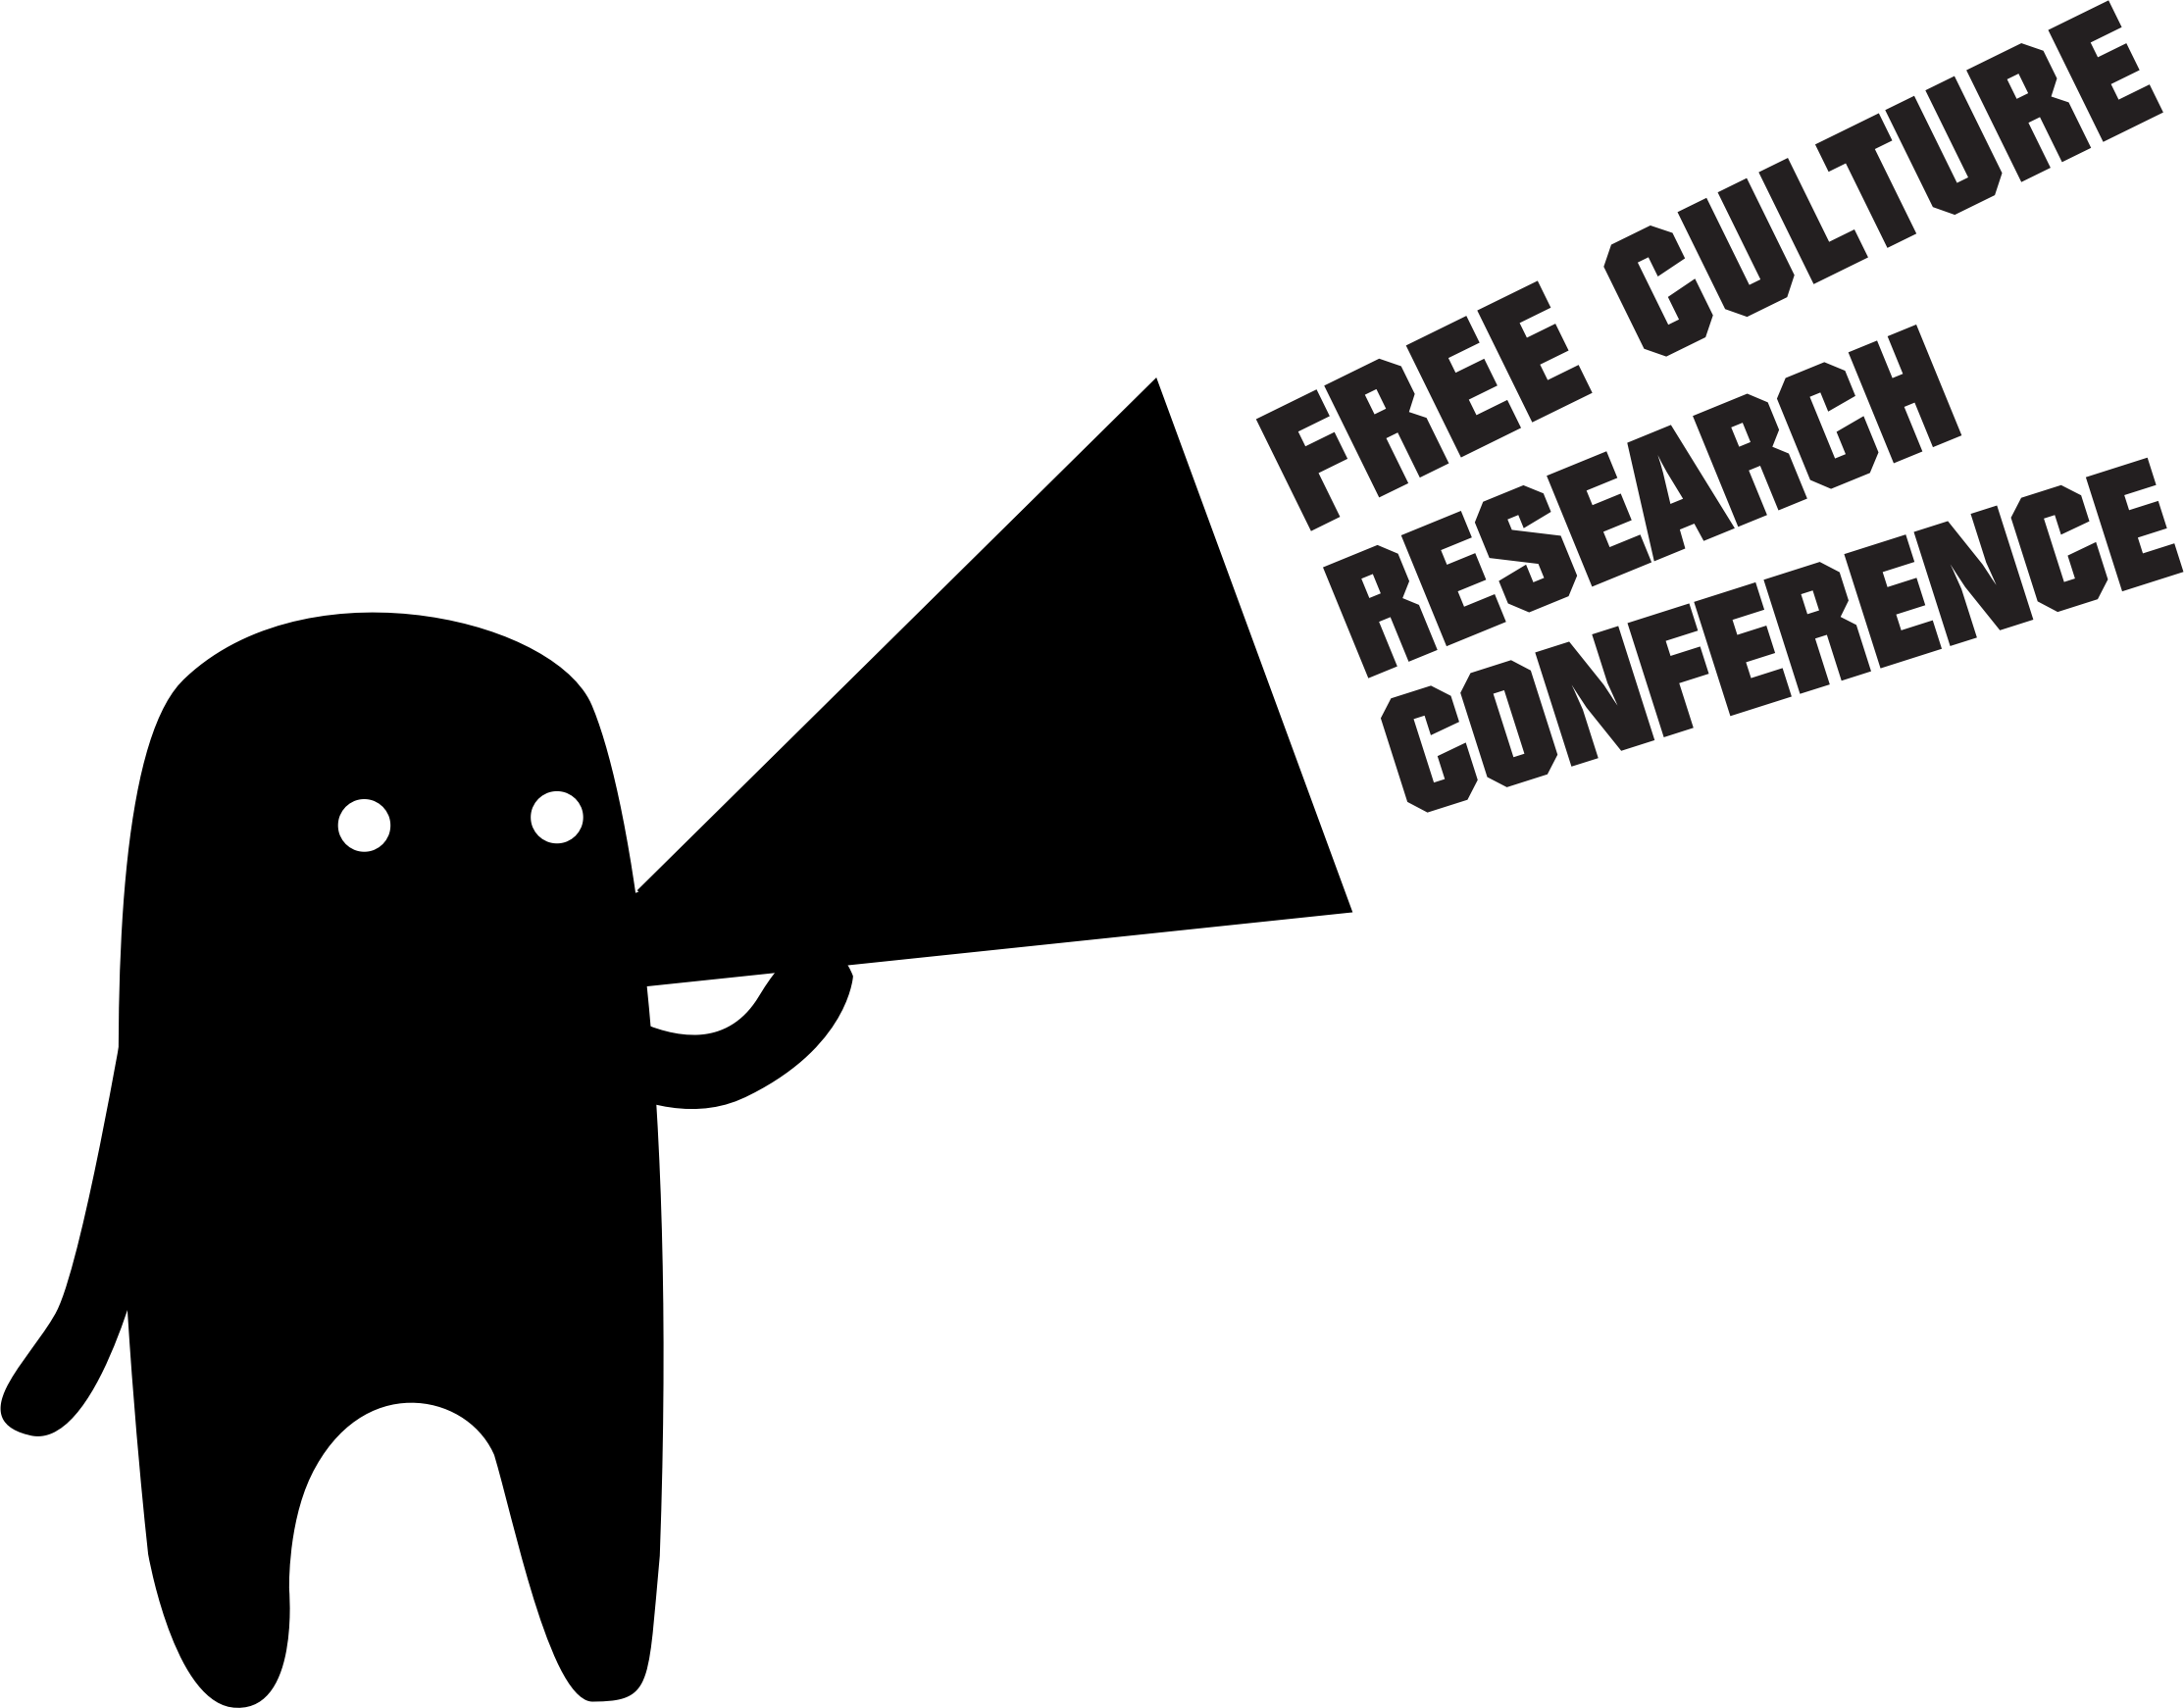 Free Culture Research Conference Logo 3 by hank0071